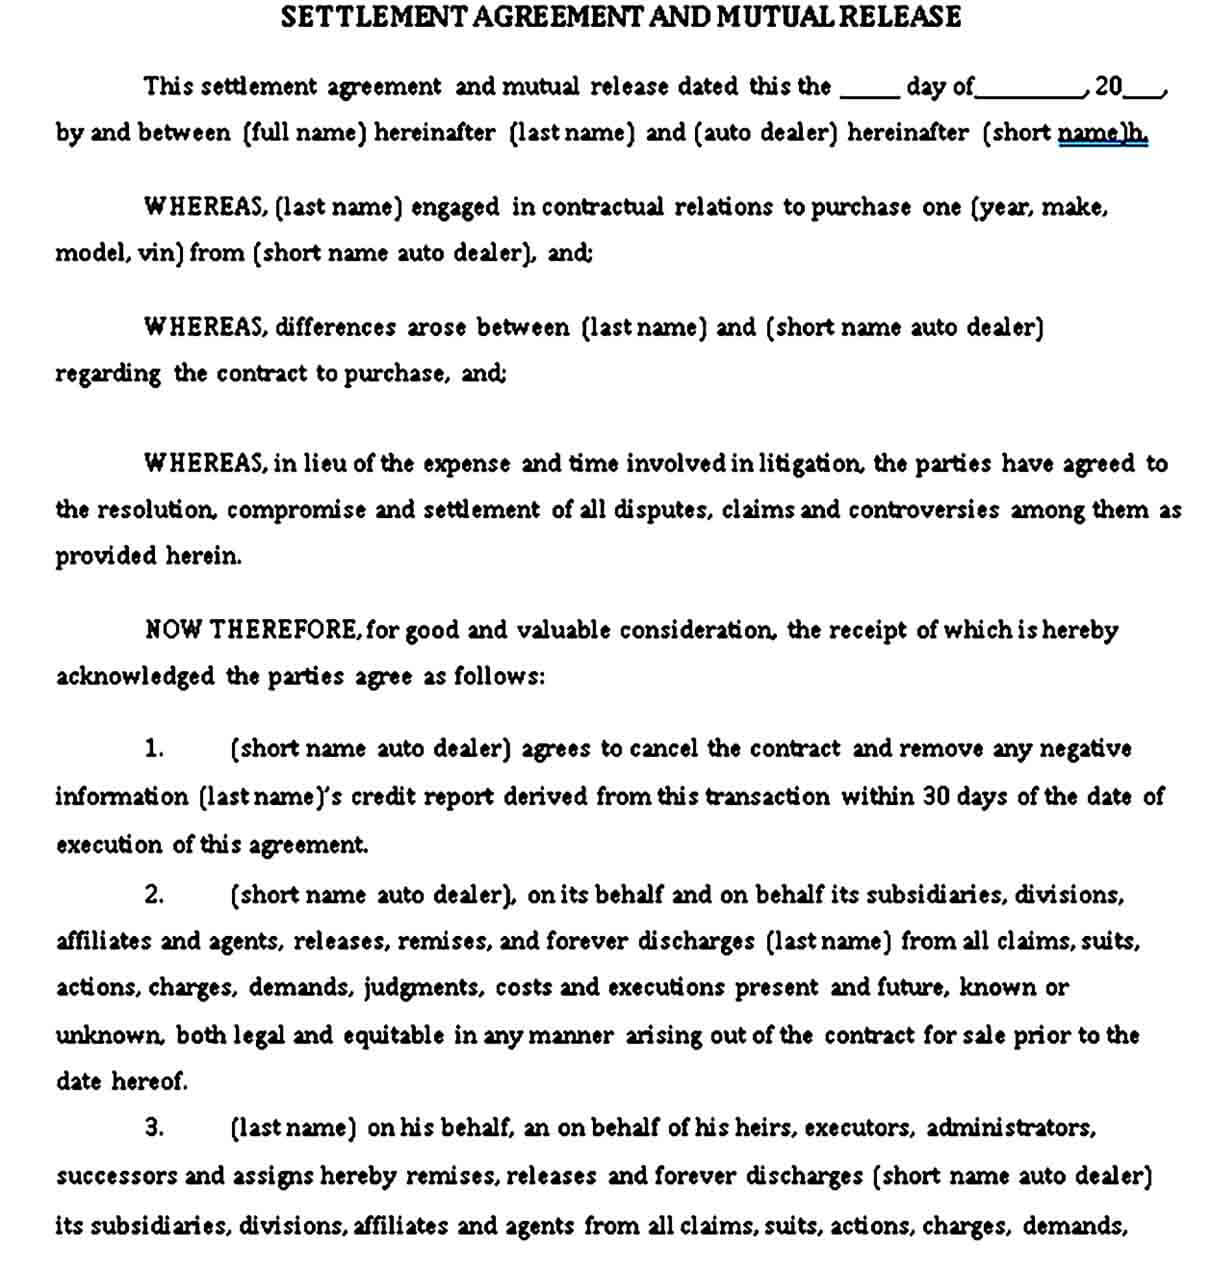 Settlement Agreement and Mutual Release Sample Template